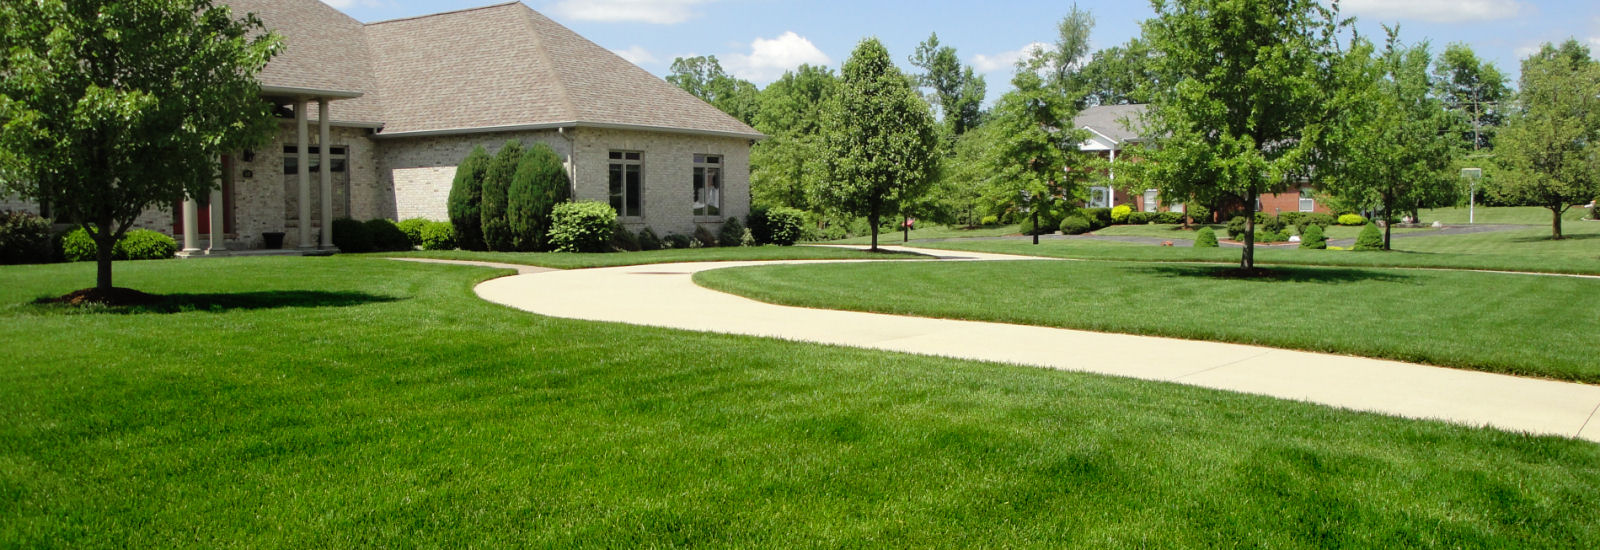 Yard mowing company in St. Louis, MO, 63017